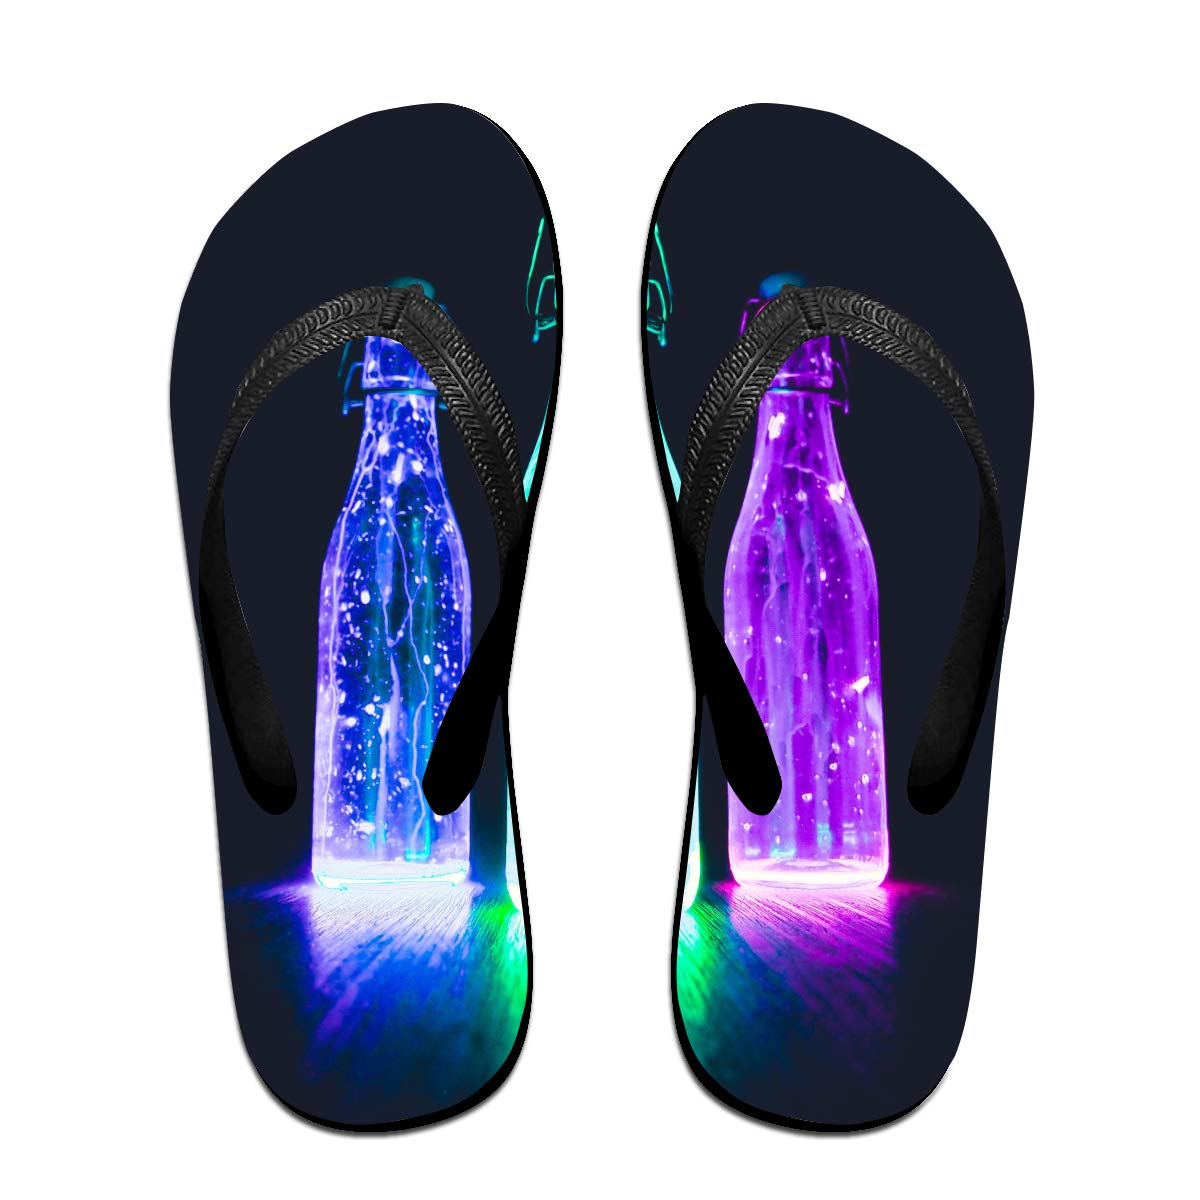 Couple Slipper Light Color Water Glass Print Flip Flops Unisex Chic Sandals Rubber Non-Slip House Thong Slippers